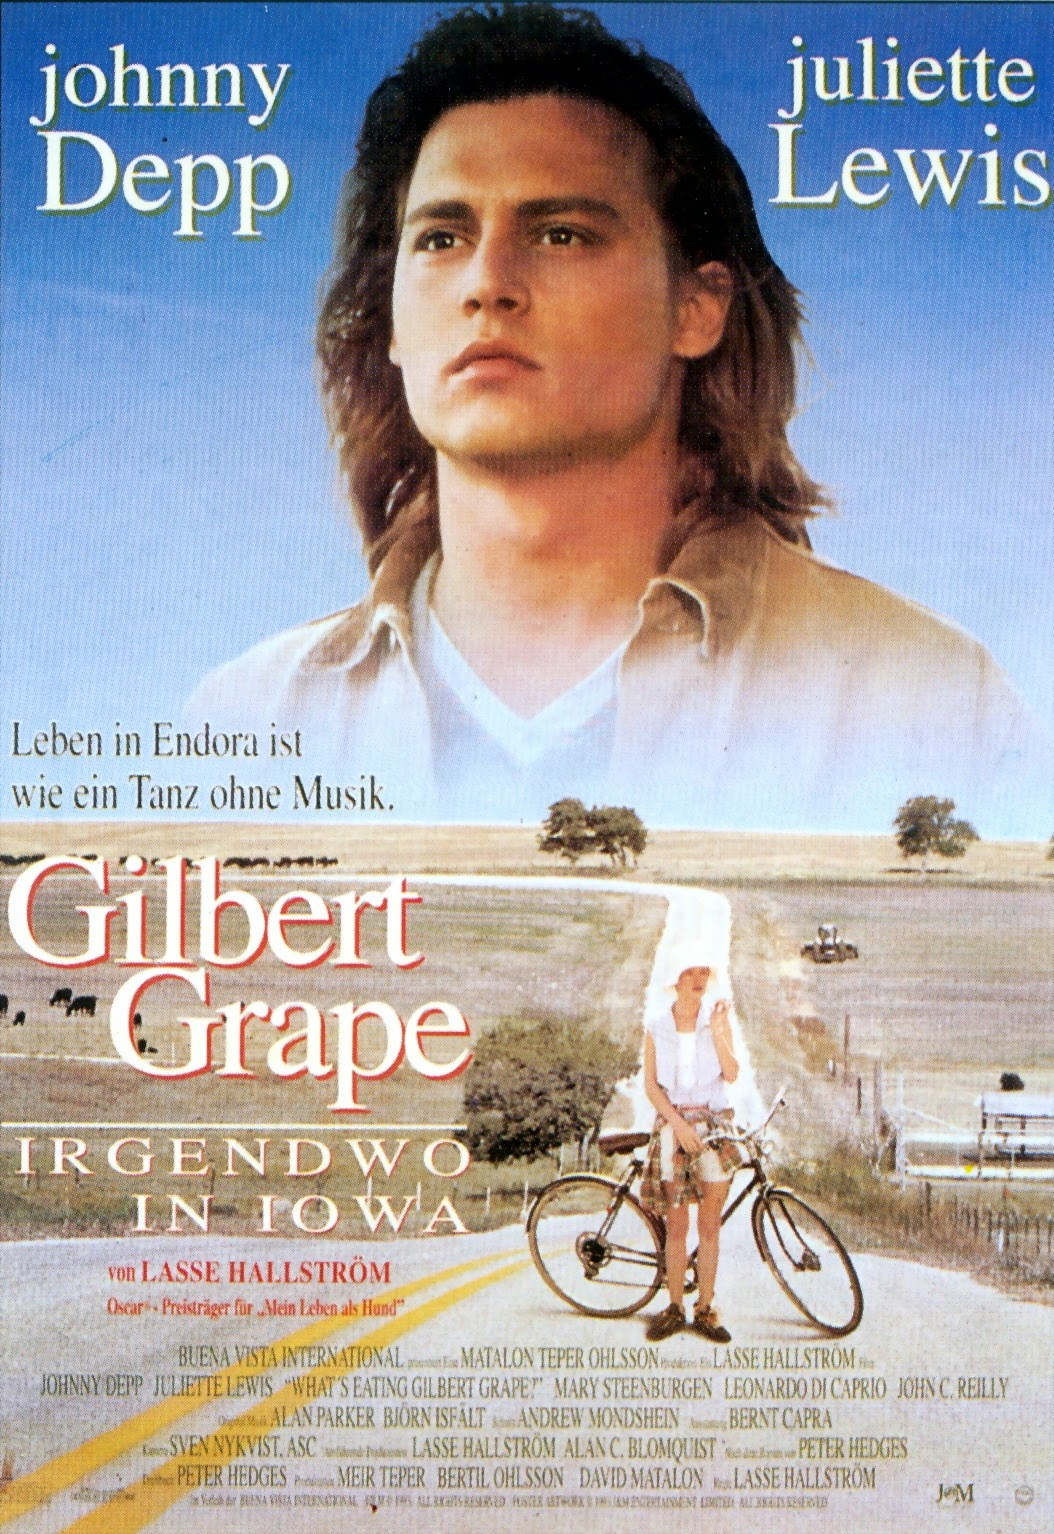 whats up gilbert grape